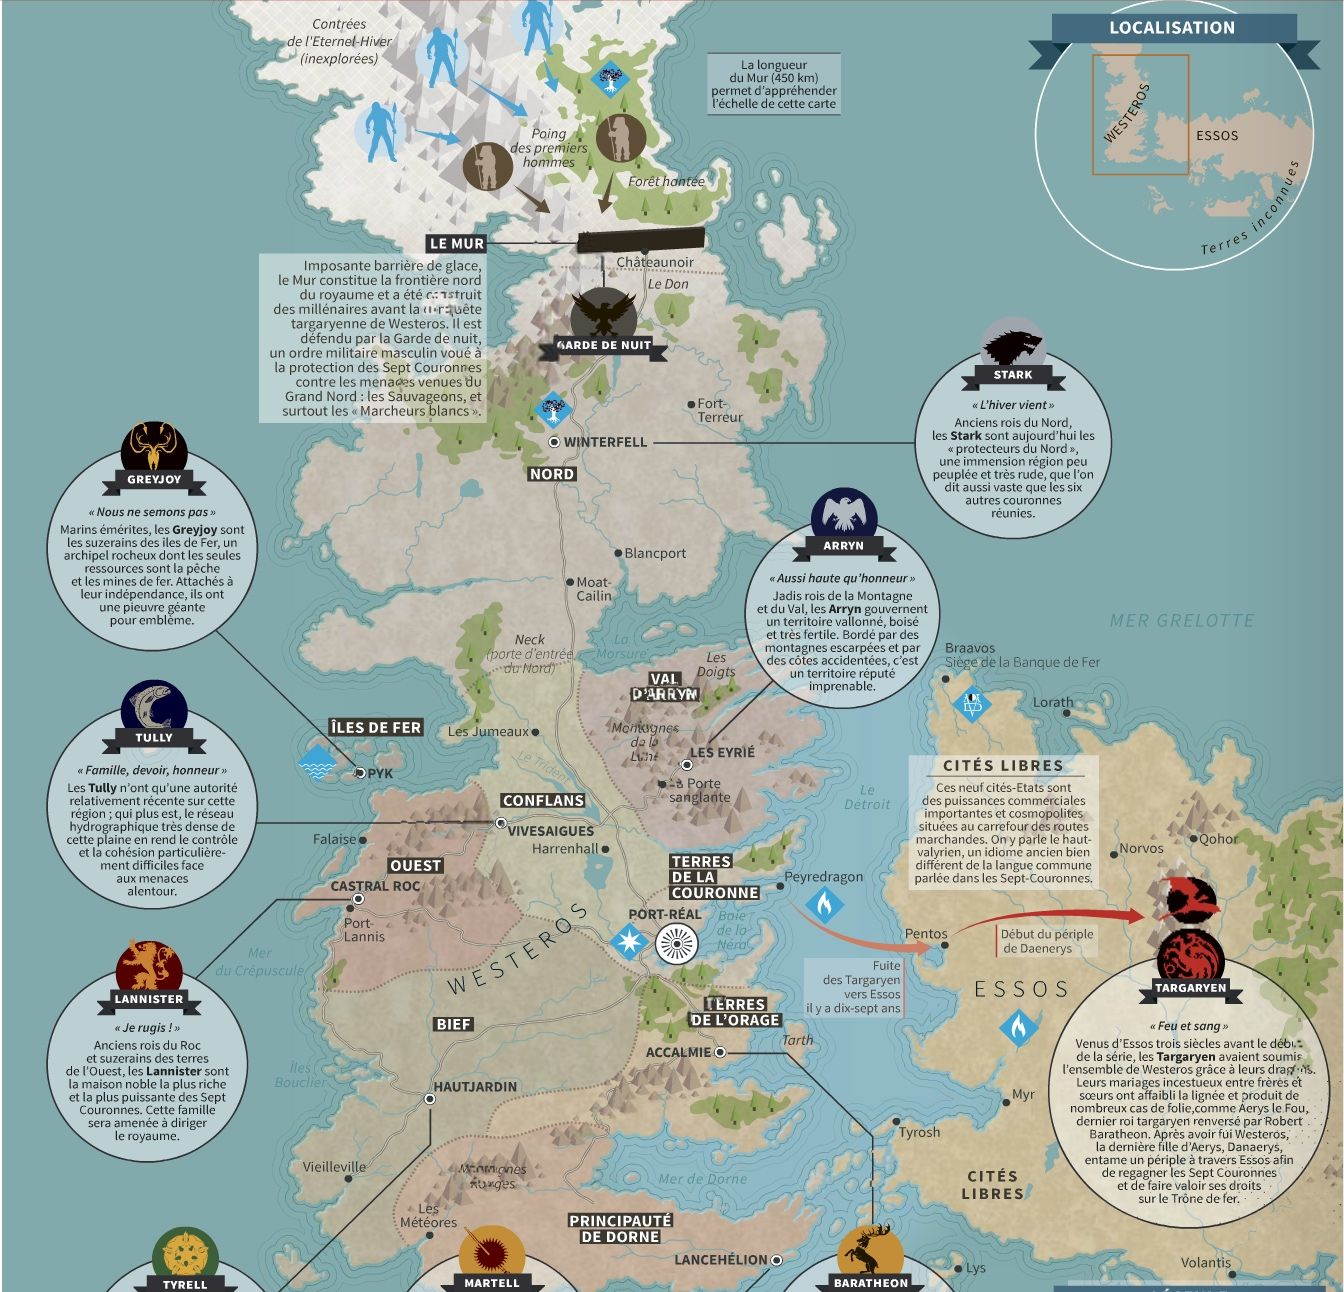 games of thrones carte La Carte de GOT en détail (avec images) | Carte de game of thrones